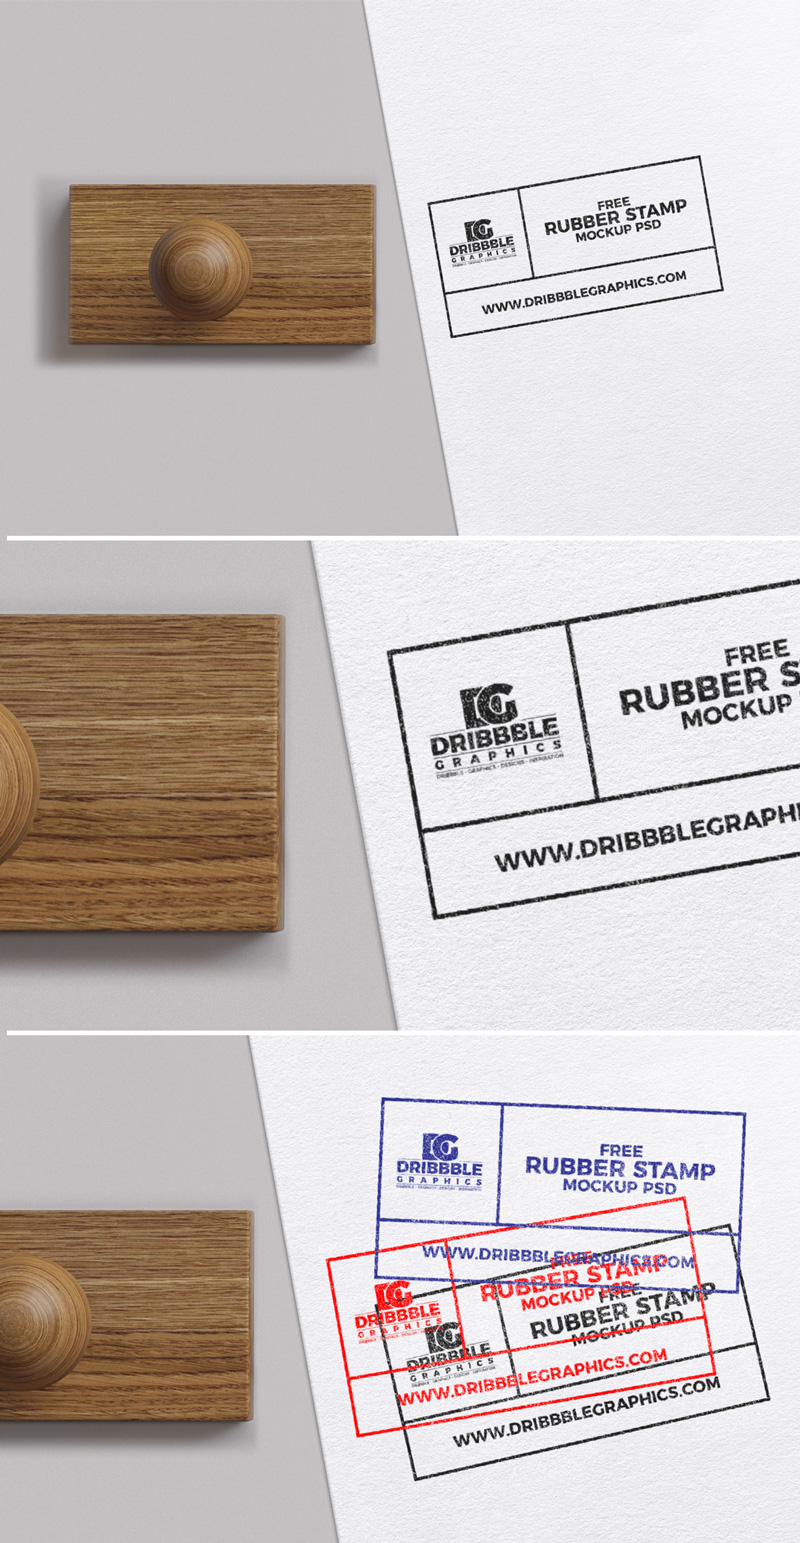 Free-Rubber-Stamp-Mockup-PSD-2018